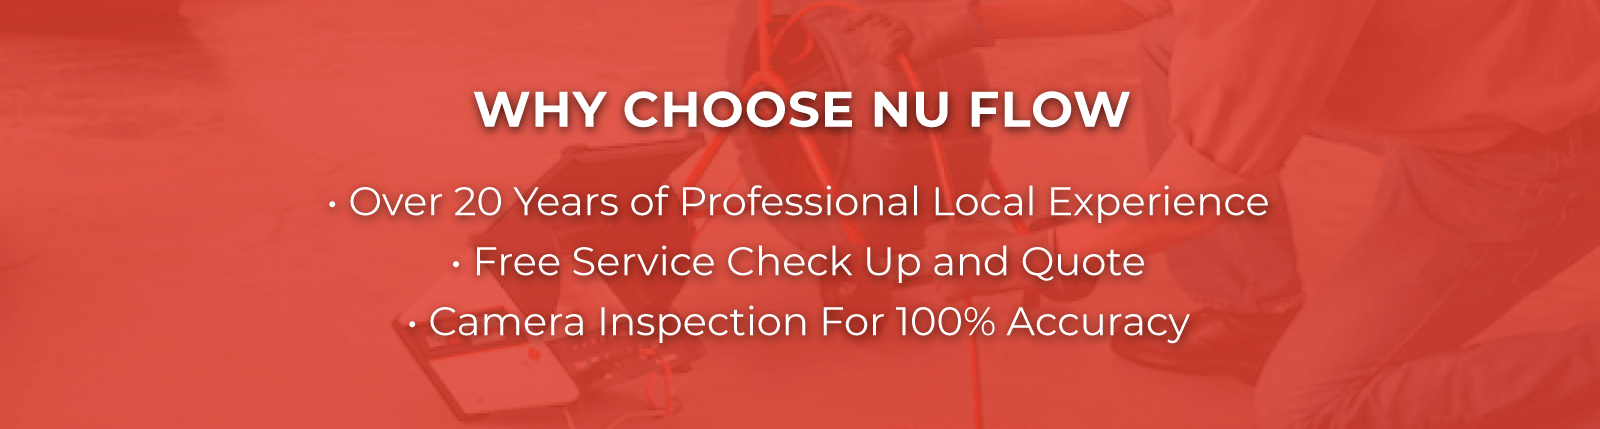 nu flow oklahoma sewer repair 1 Drain Cleaning In Edmond, OK